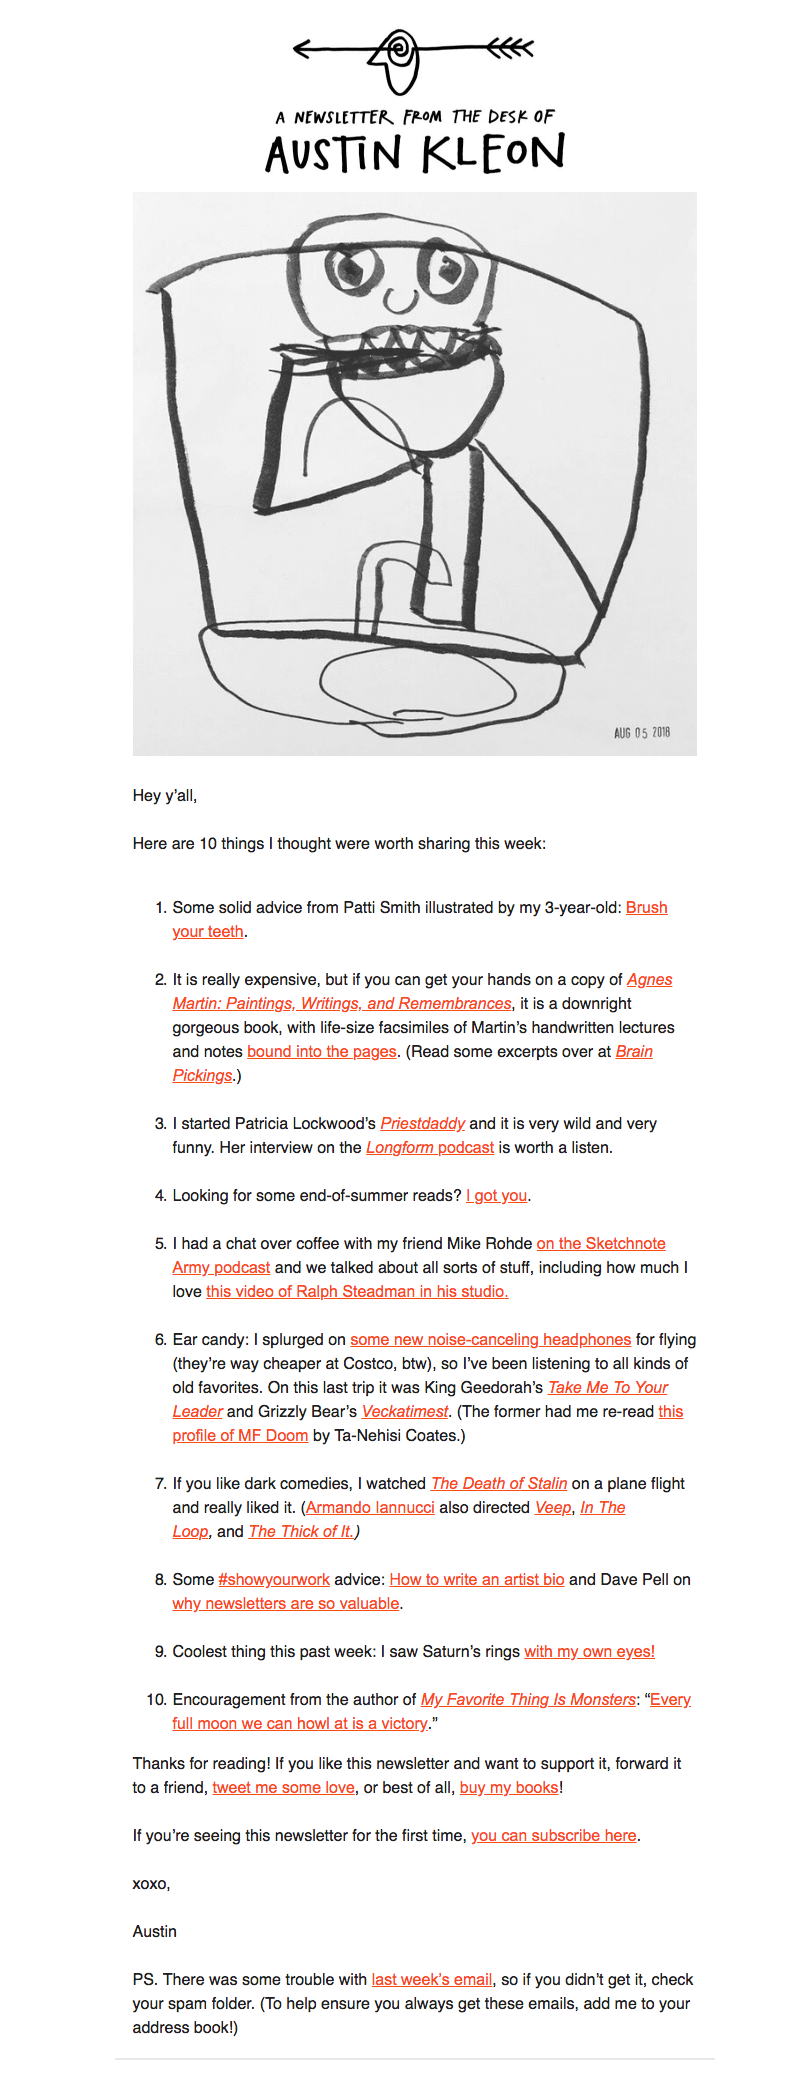 Austin Kleon email newsletter design